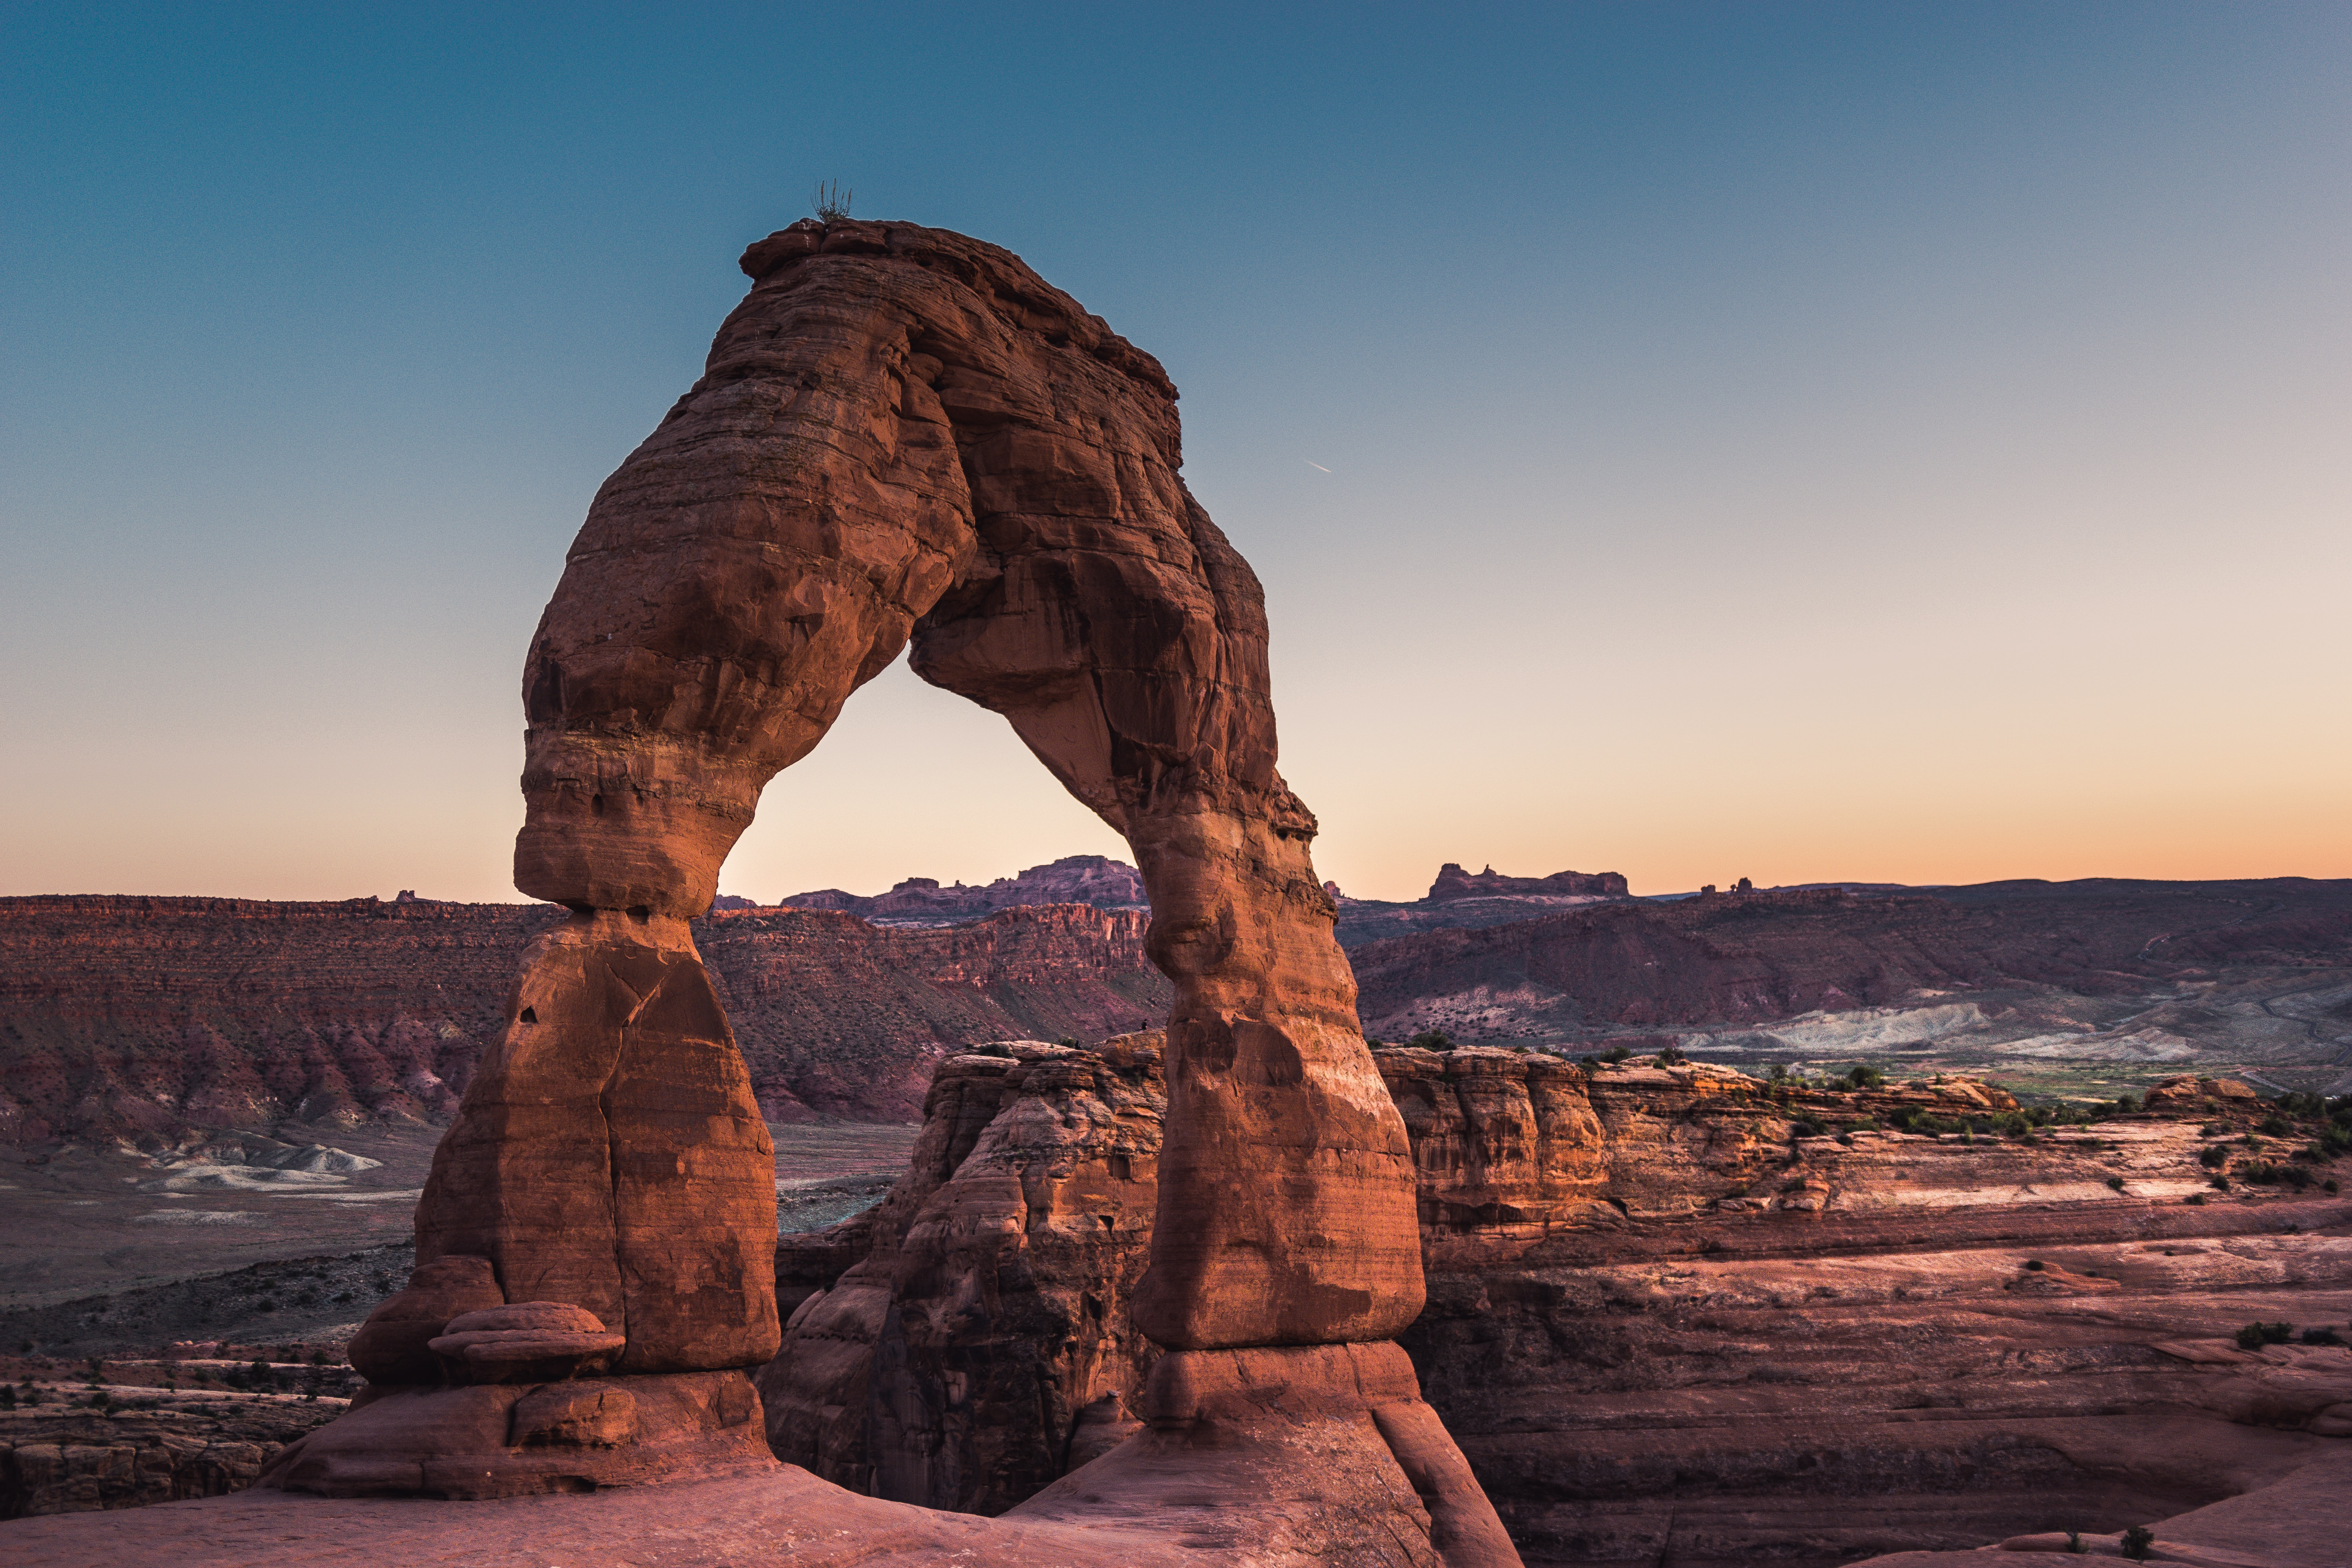 scenery of rock formation